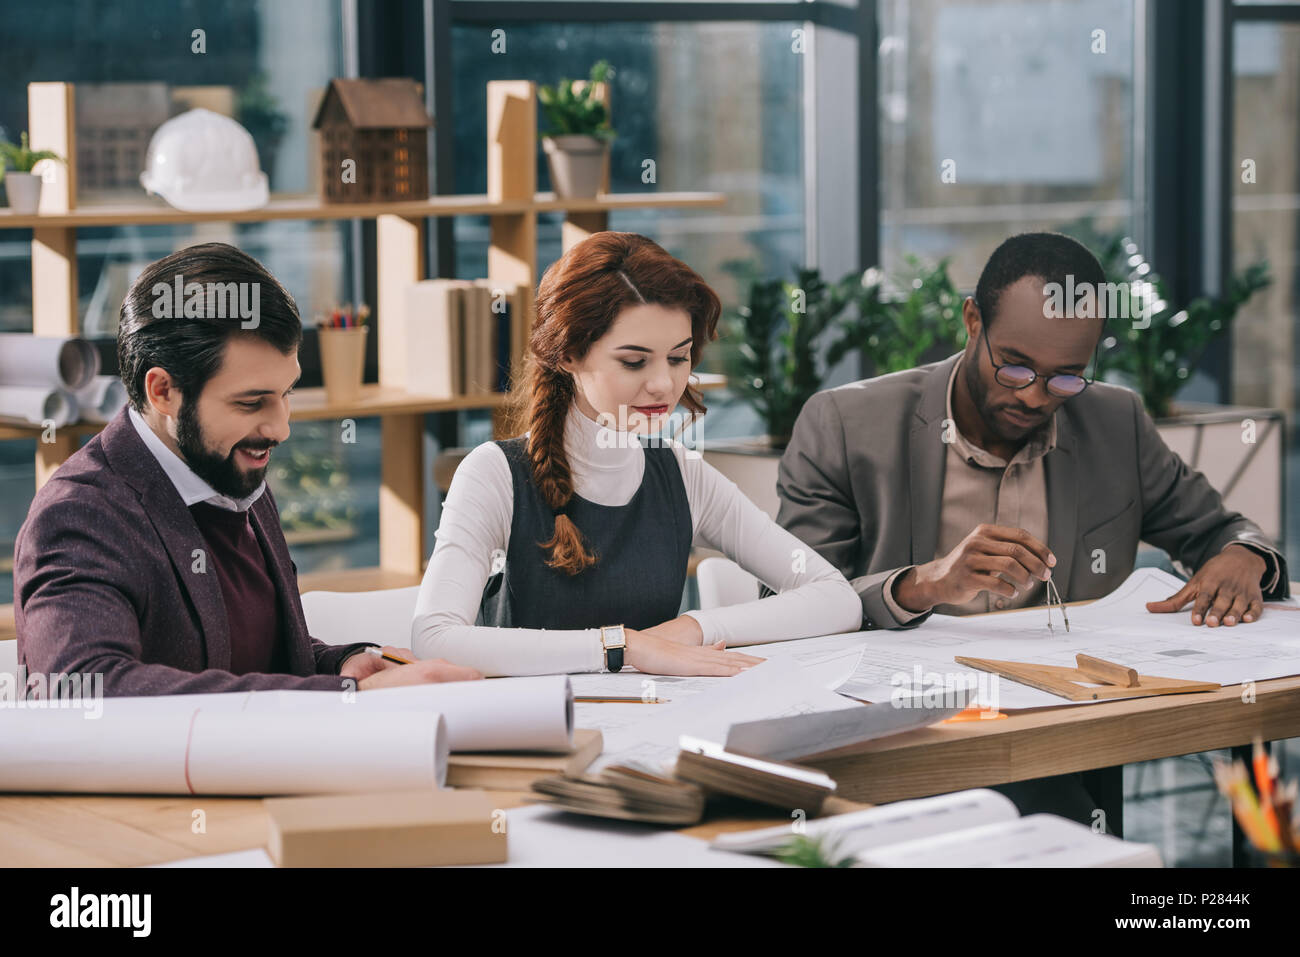 multiethnic team of architects working together at modern office - Stock Image